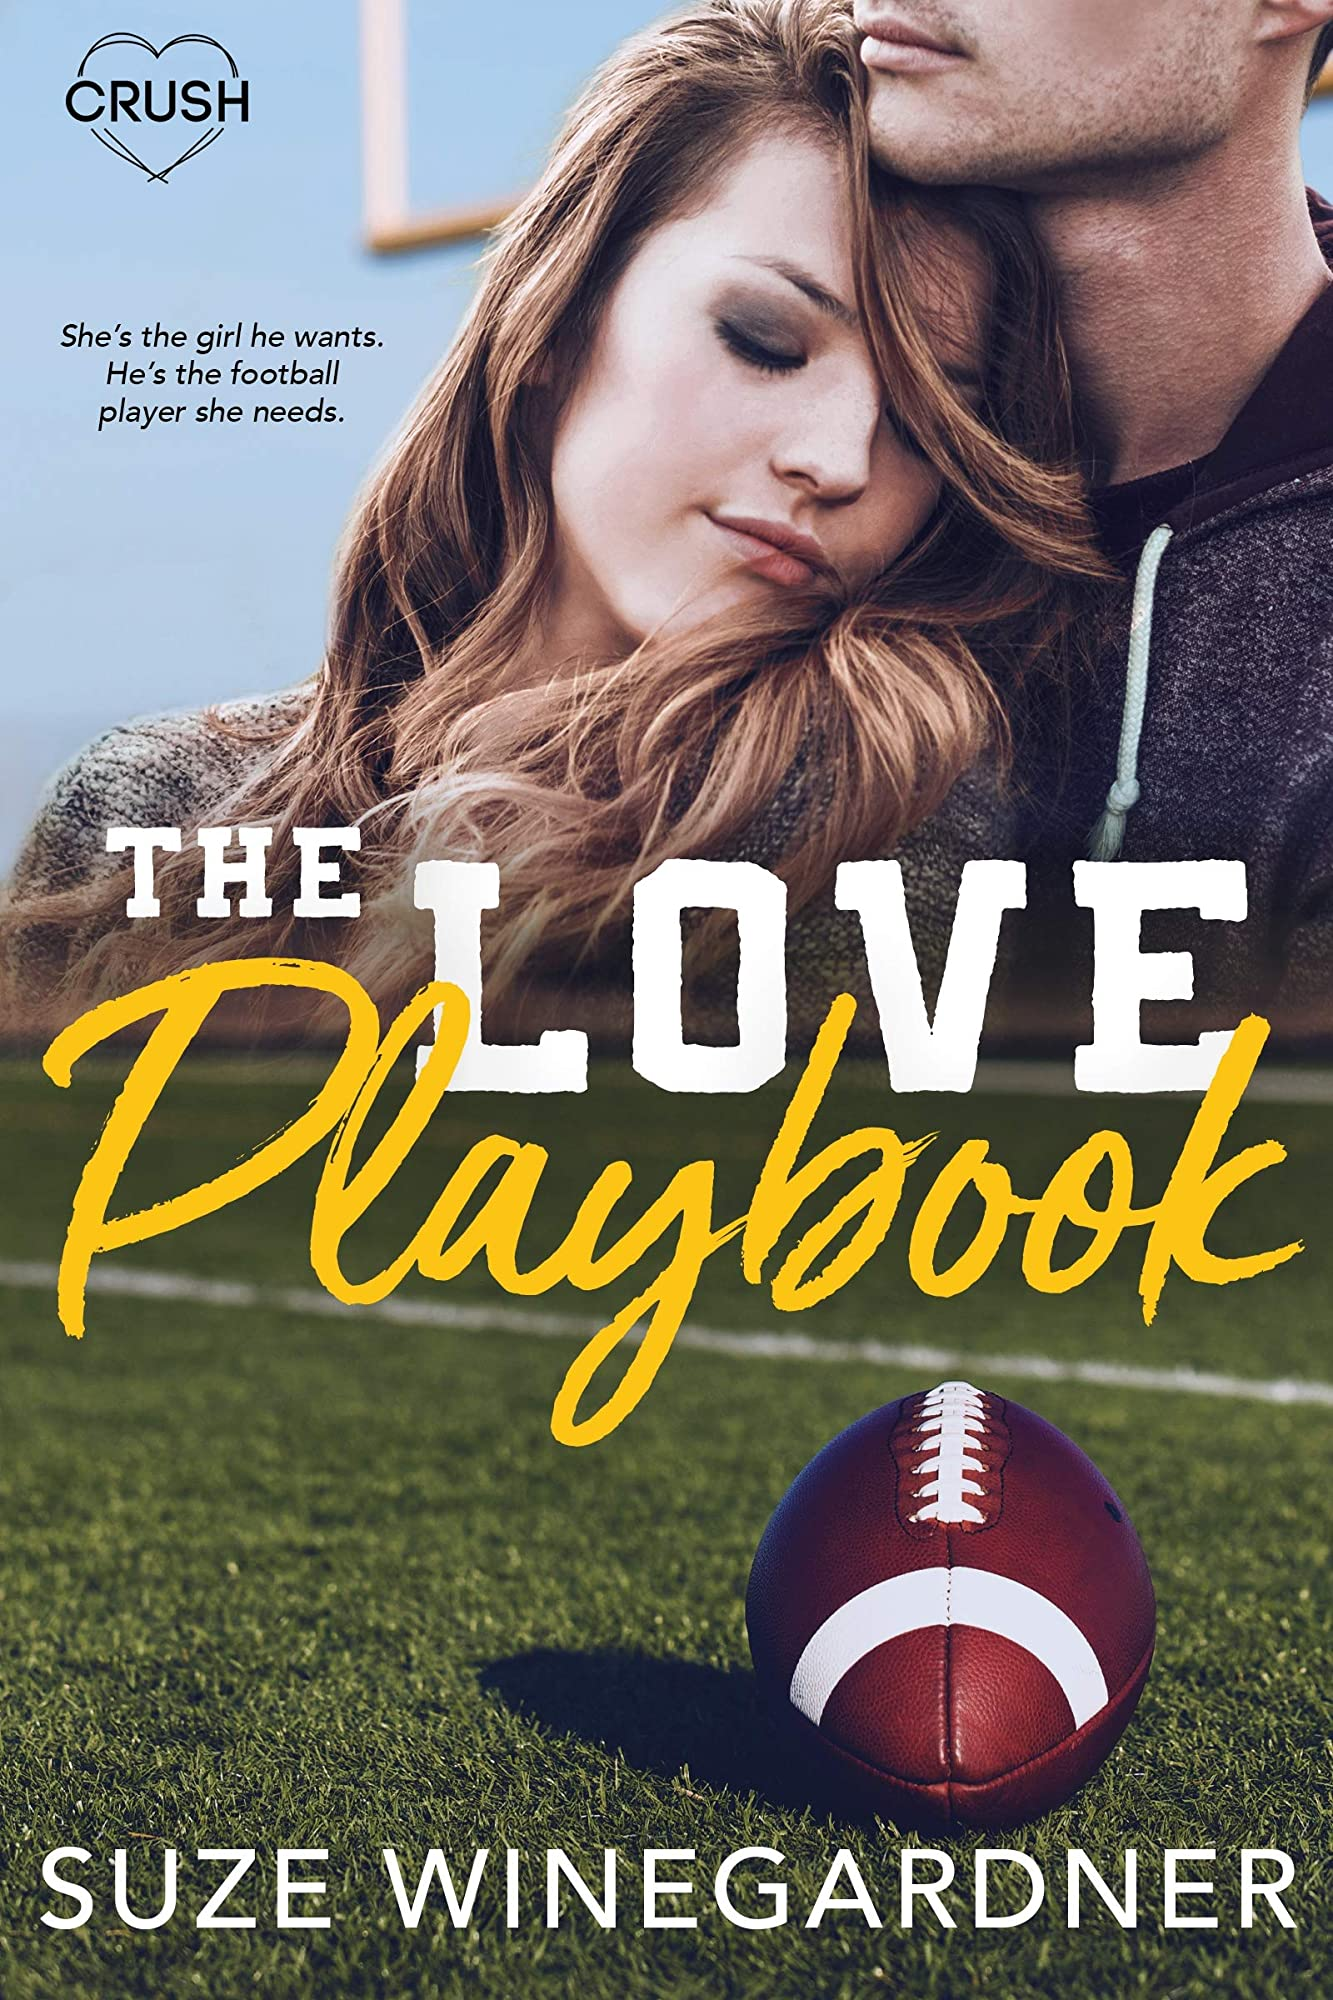 The Love Playbook by Suze Winegardner